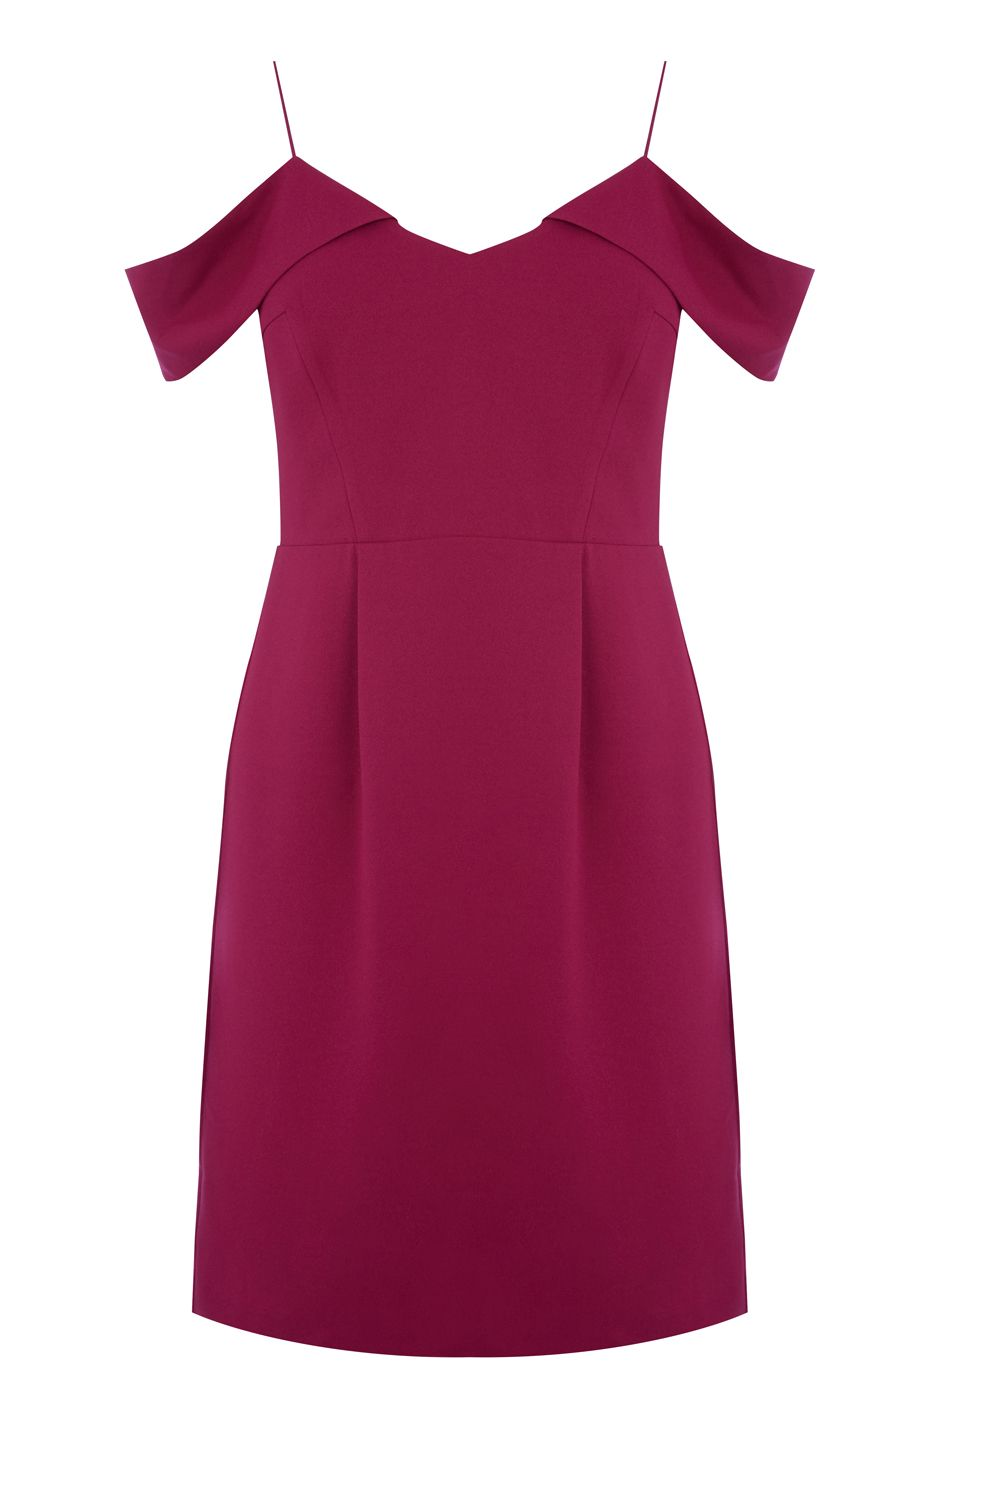 Oasis Bardot Dress Longer Length, Berry